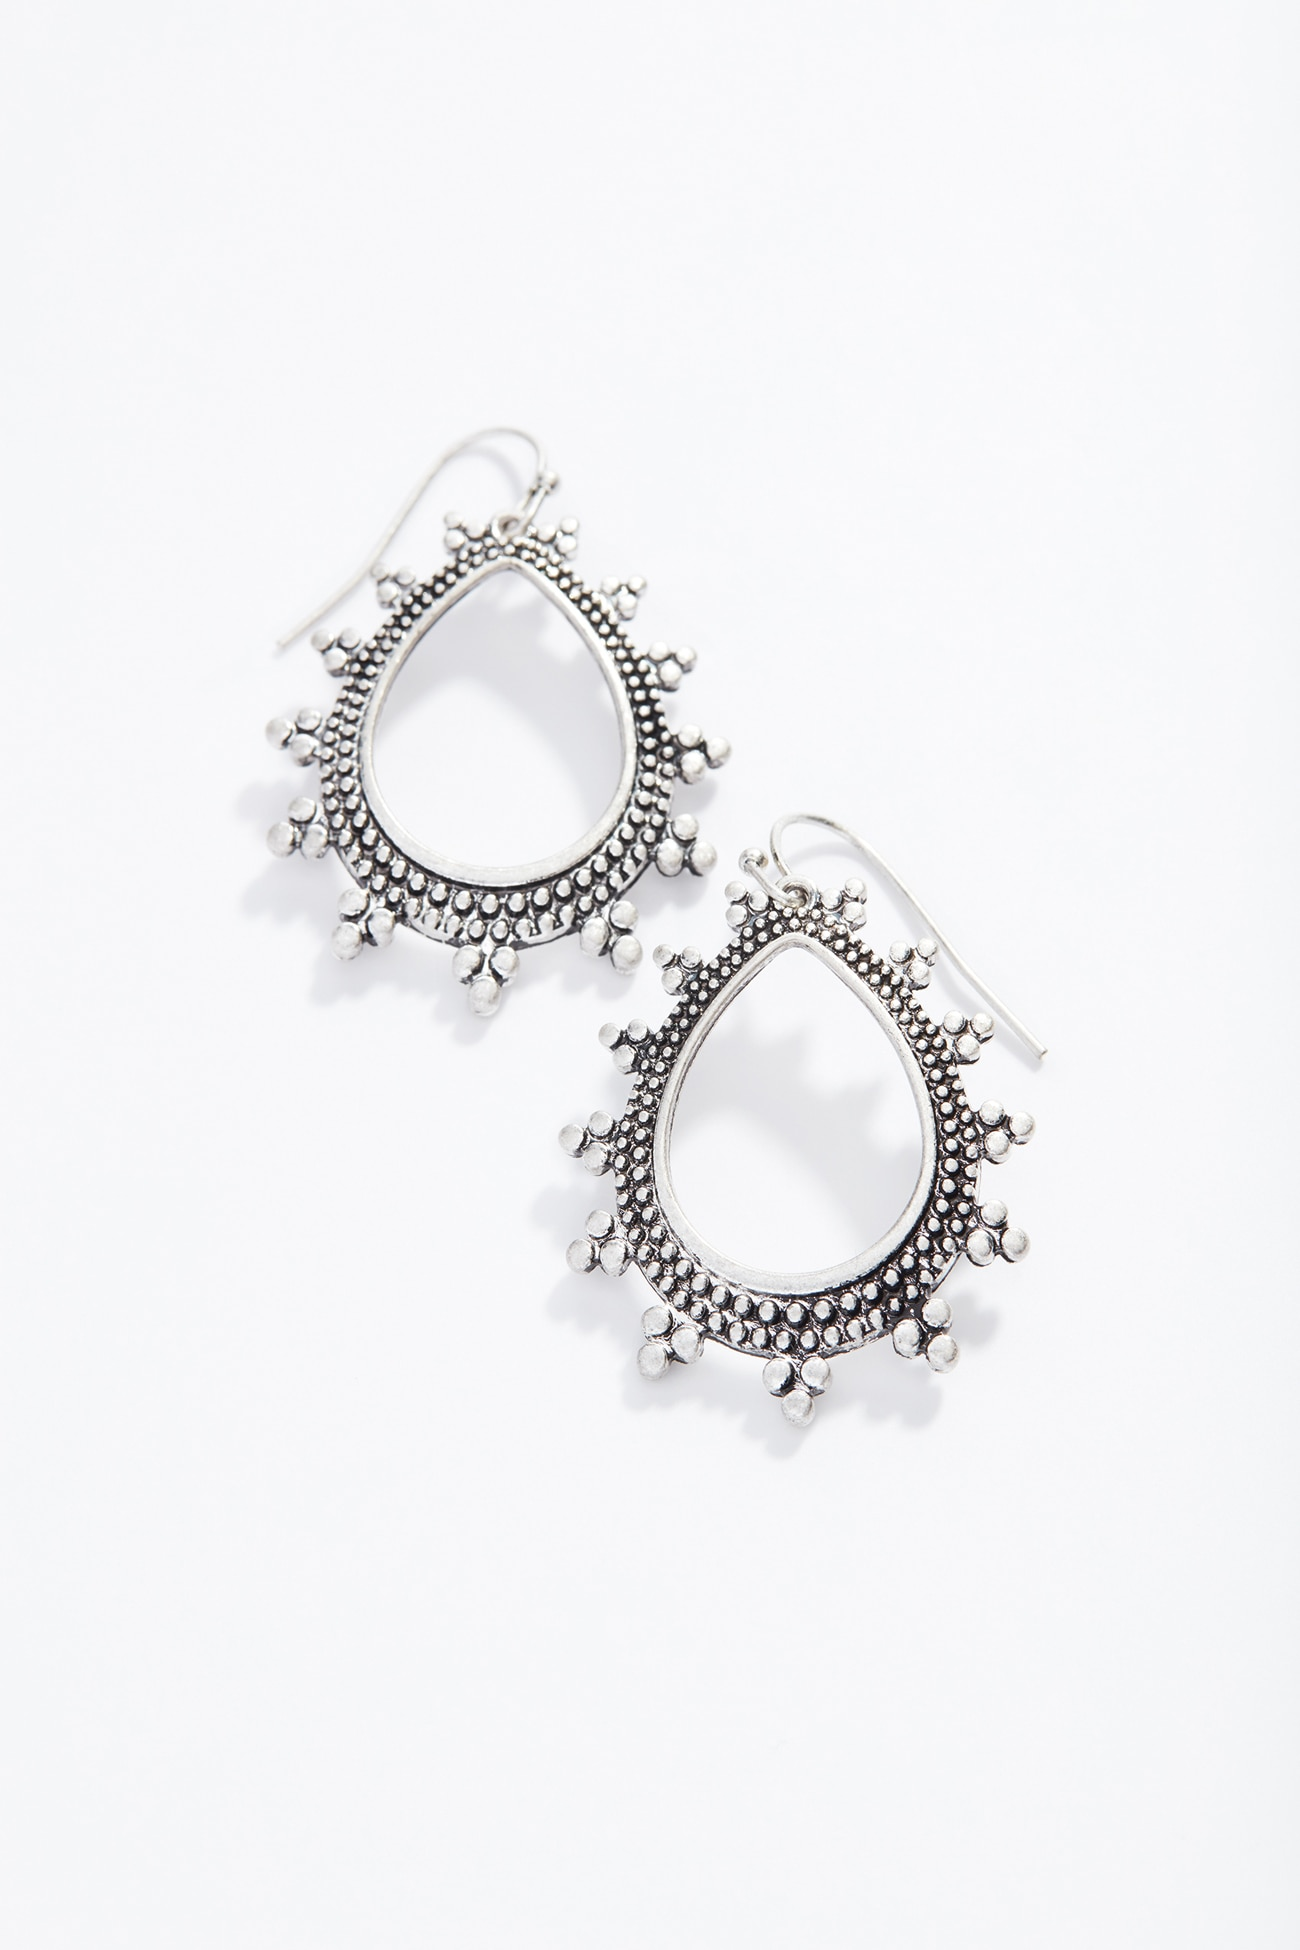 antiqued-metal teardrop earrings